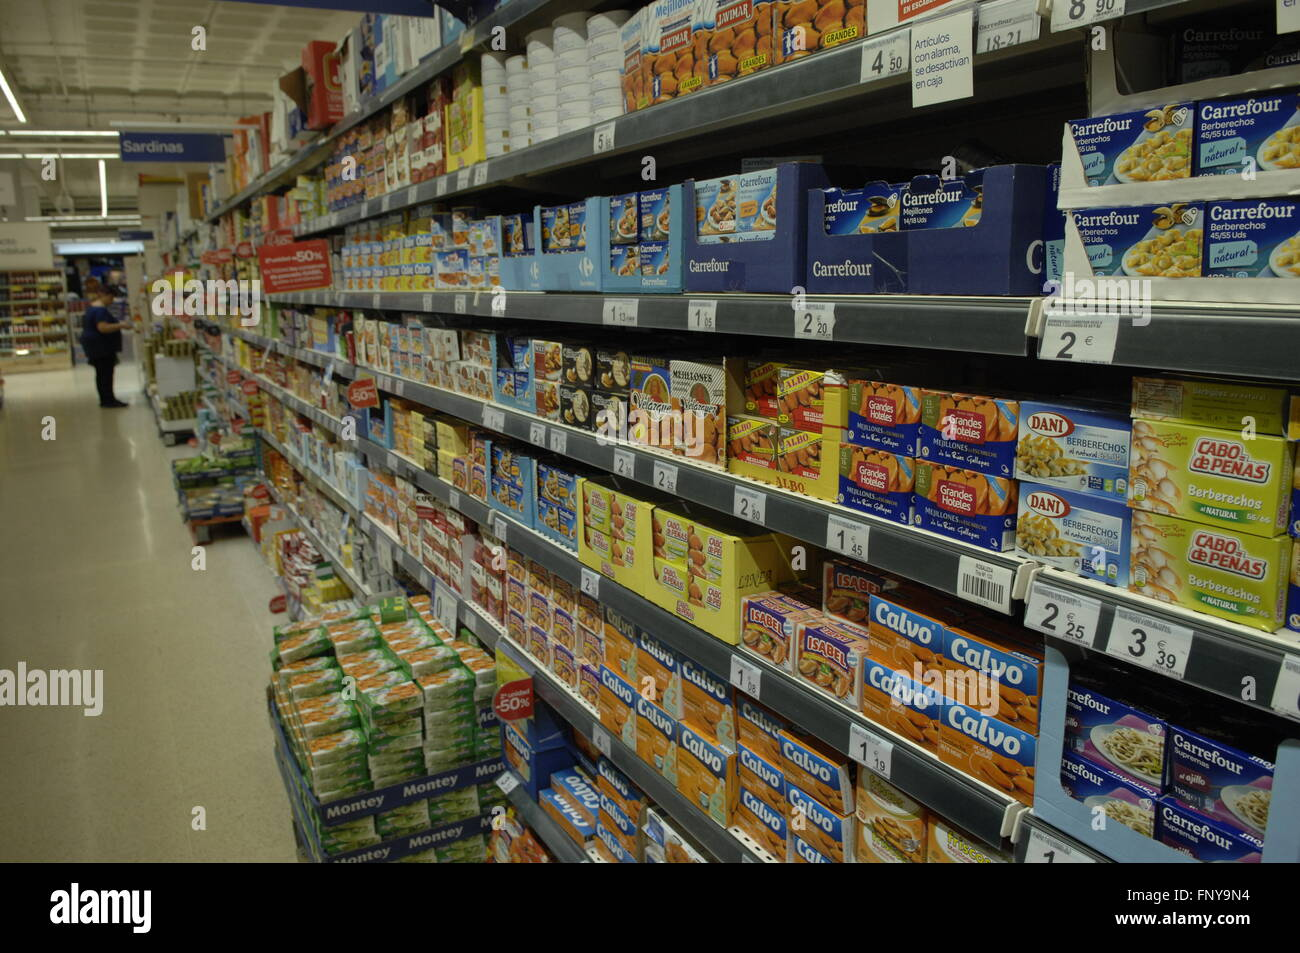 Carrefour Supermarket food aisle displaying products in Malaga Spain. Stock Photo